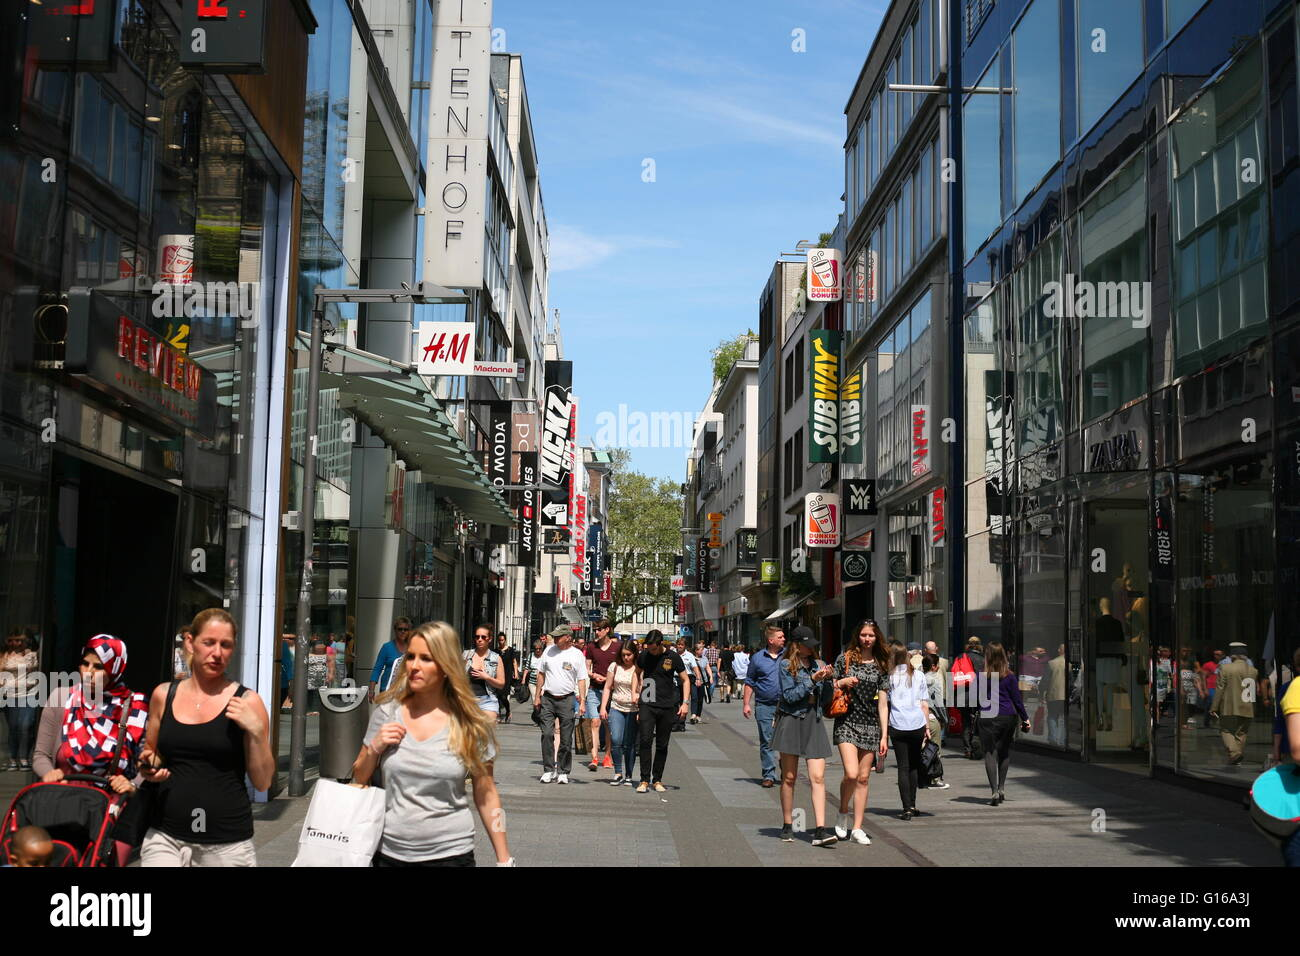 look into the famous shopping street Hohe Straße, in Cologne, Germany Stock Photo